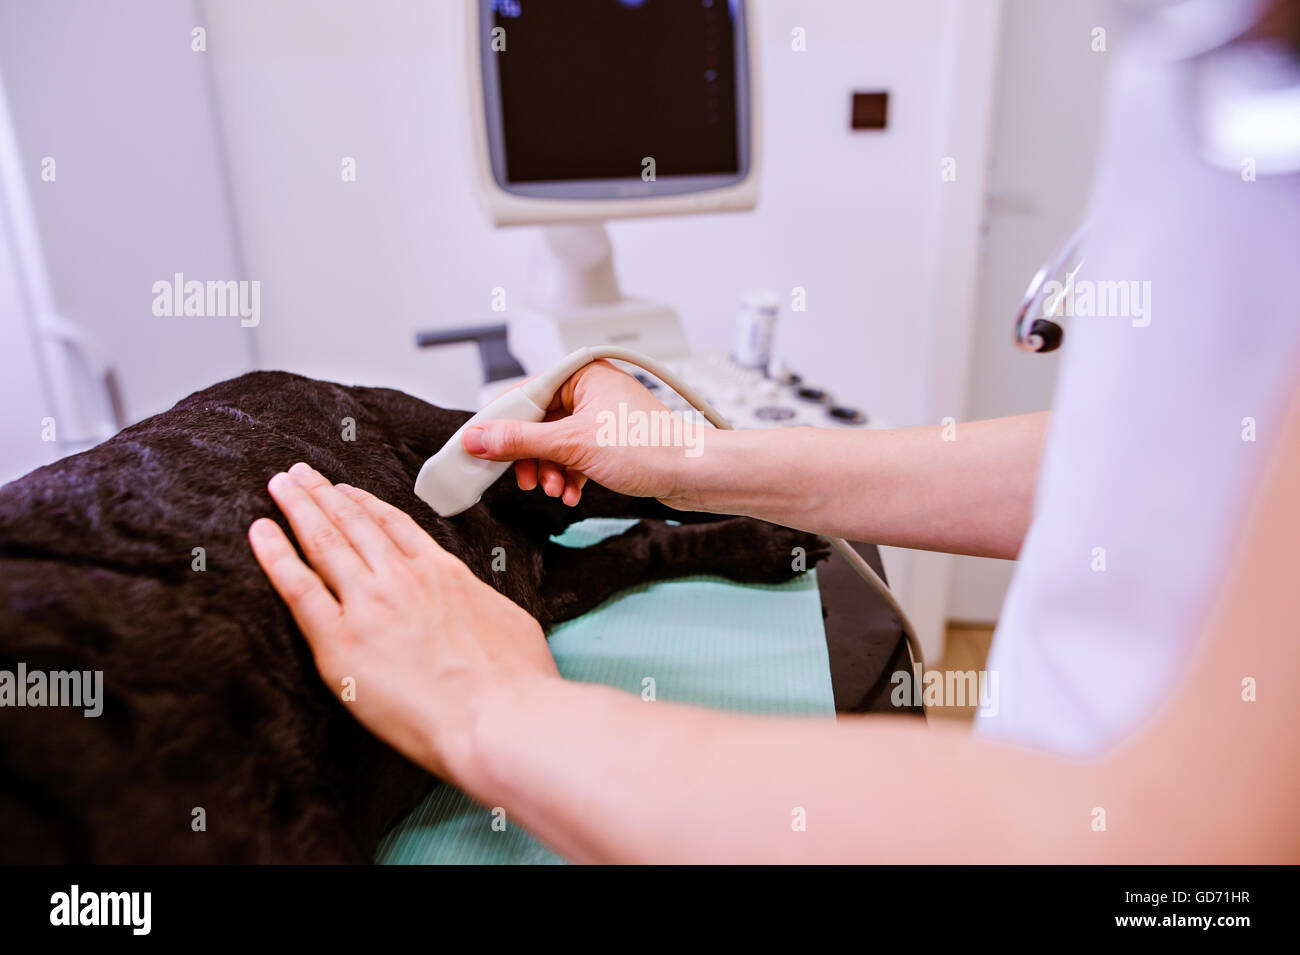 Dog having ultrasound scan at Veterinary clinic. - Stock Image